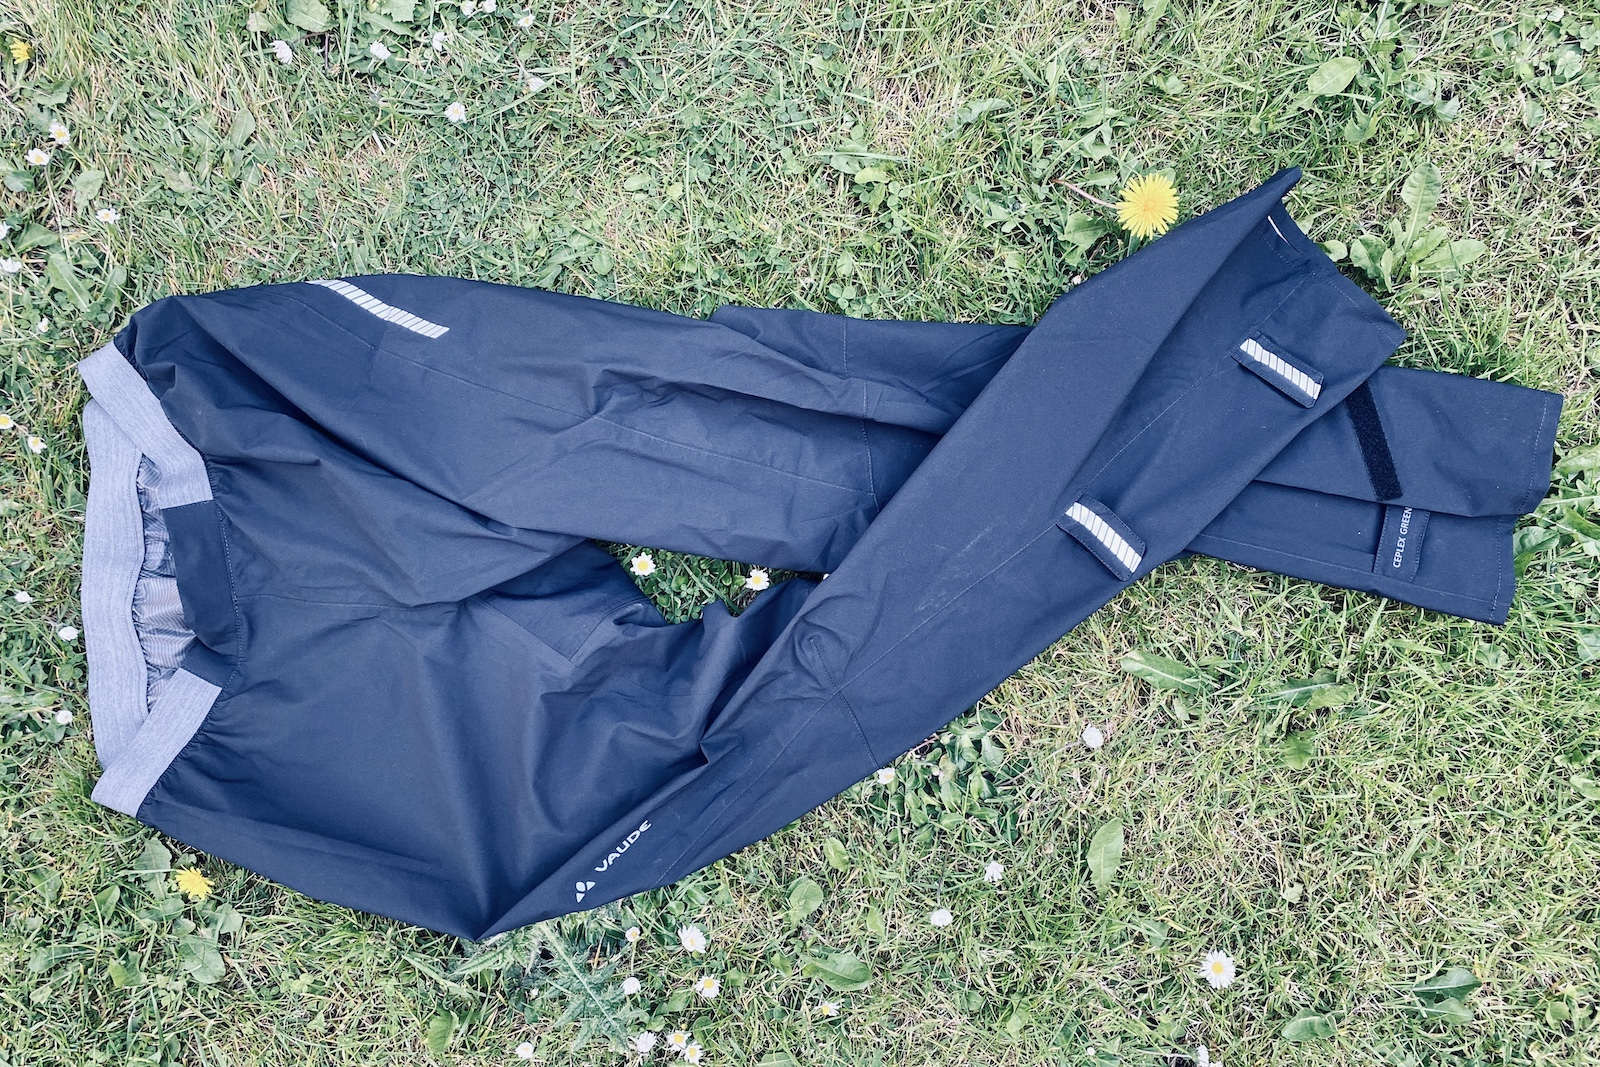 Vaude Vatten Lightweight Waterproof Cycling Trousers